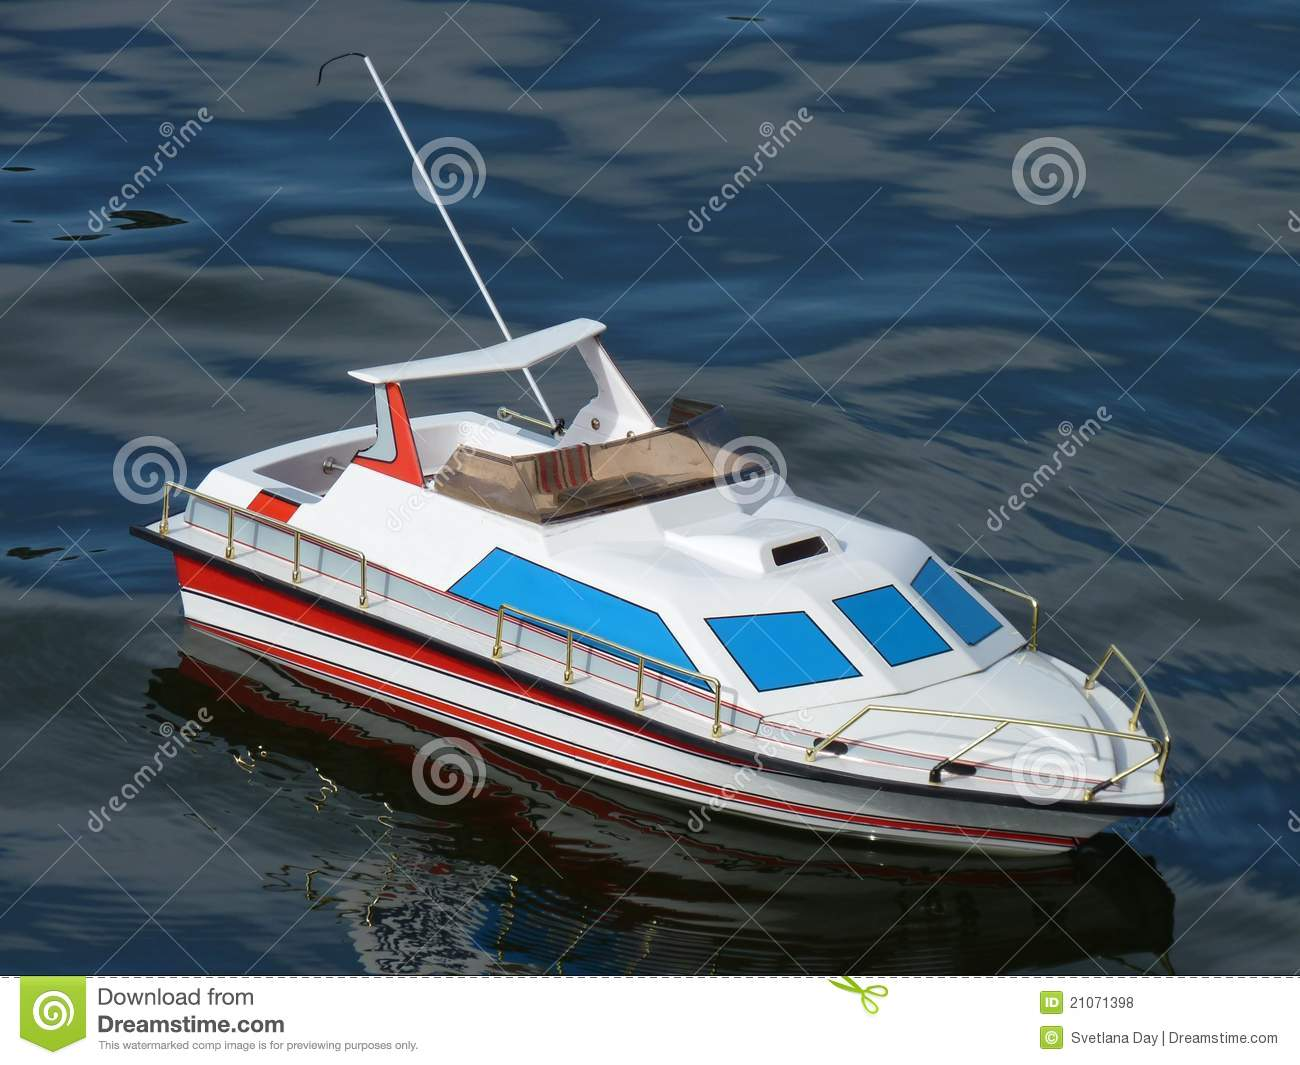 Speed Boat Model on the water.